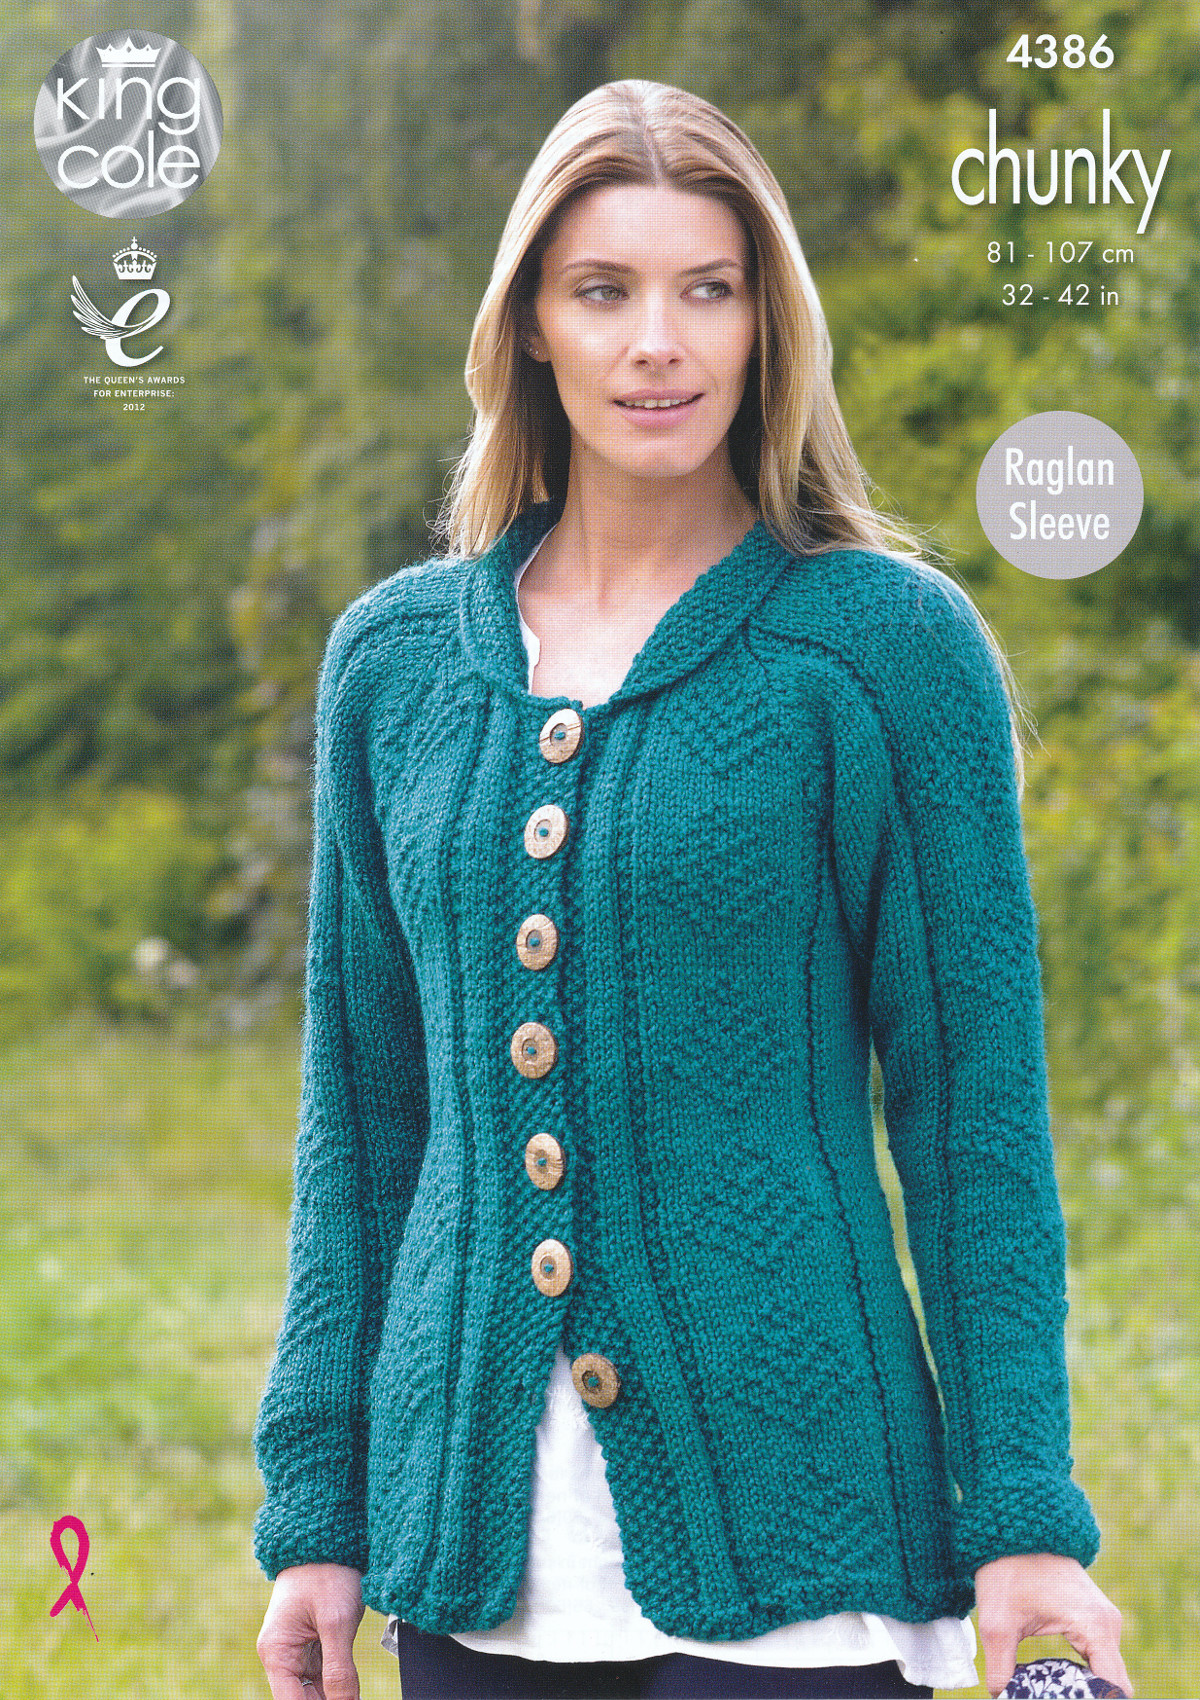 Women s Cardigan Knitting Pattern : Ladies Chunky Knitting Pattern King Cole Womens Raglan Sleeve Cardigan Coat 4...